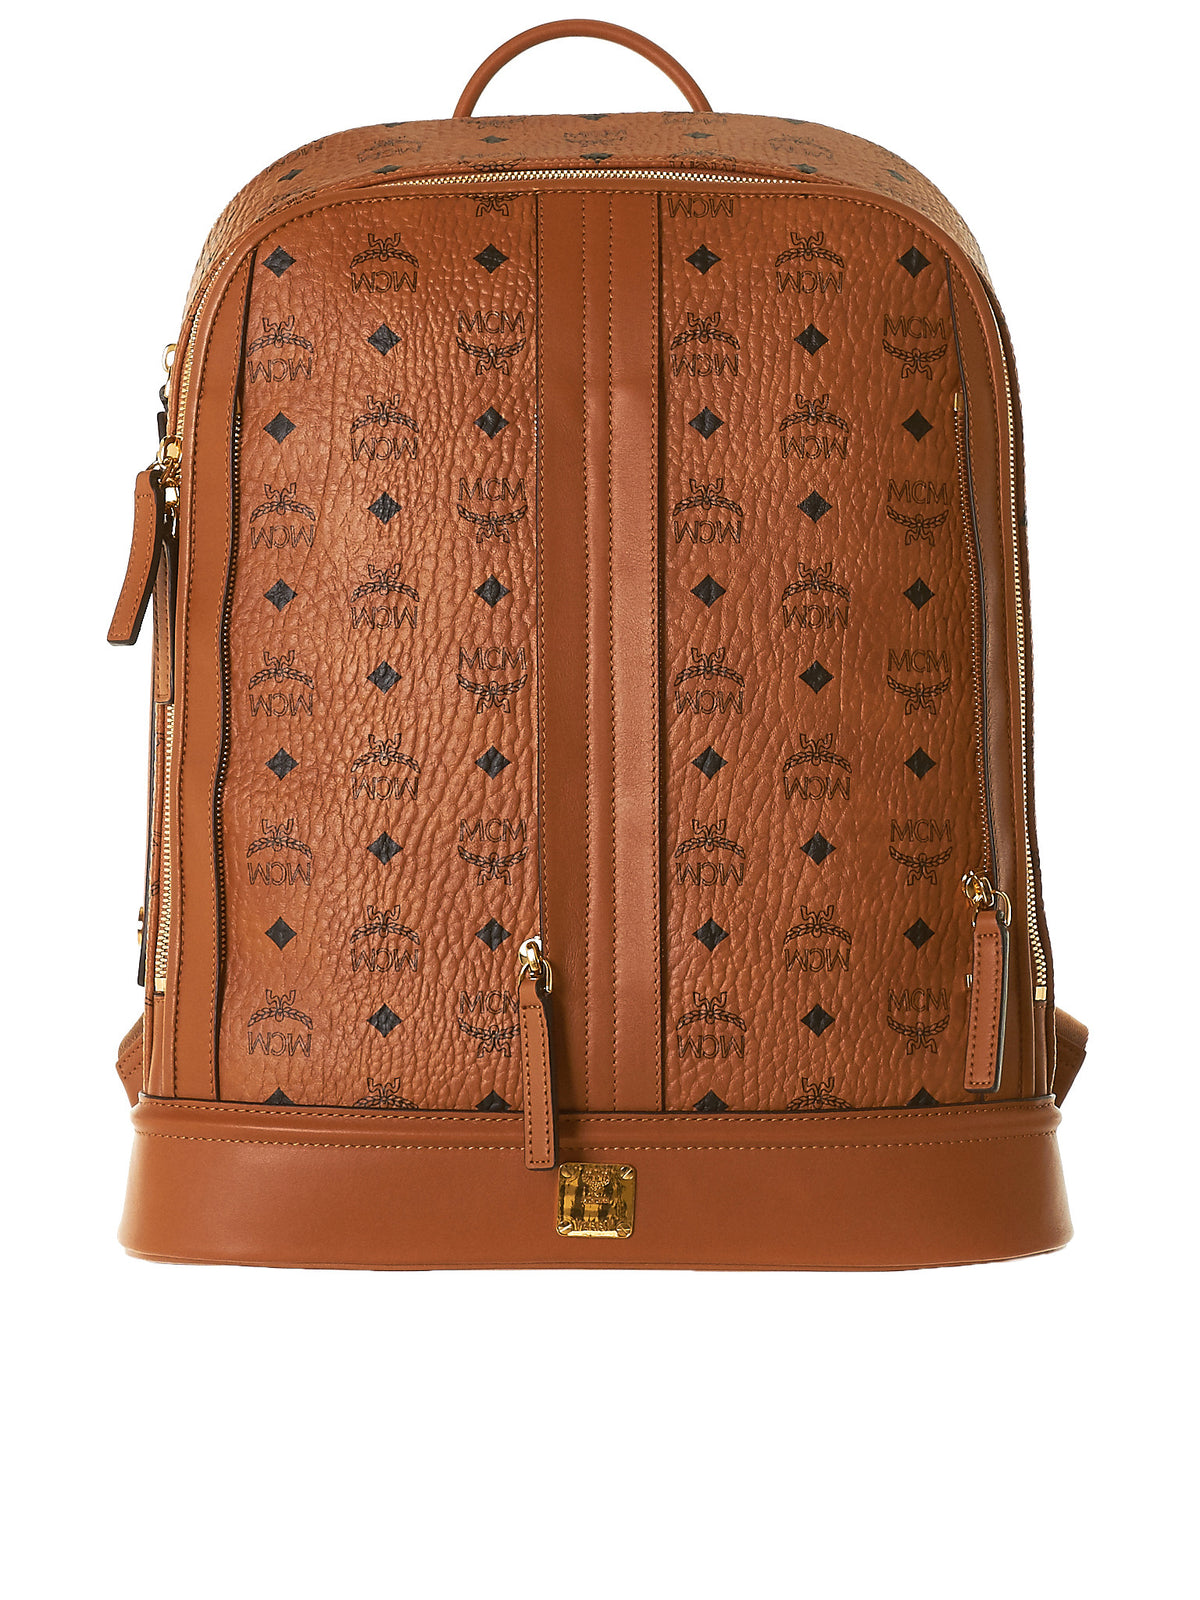 MCM Leather Backpack (MMKTSOC14-COGNAC) - H. Lorenzo